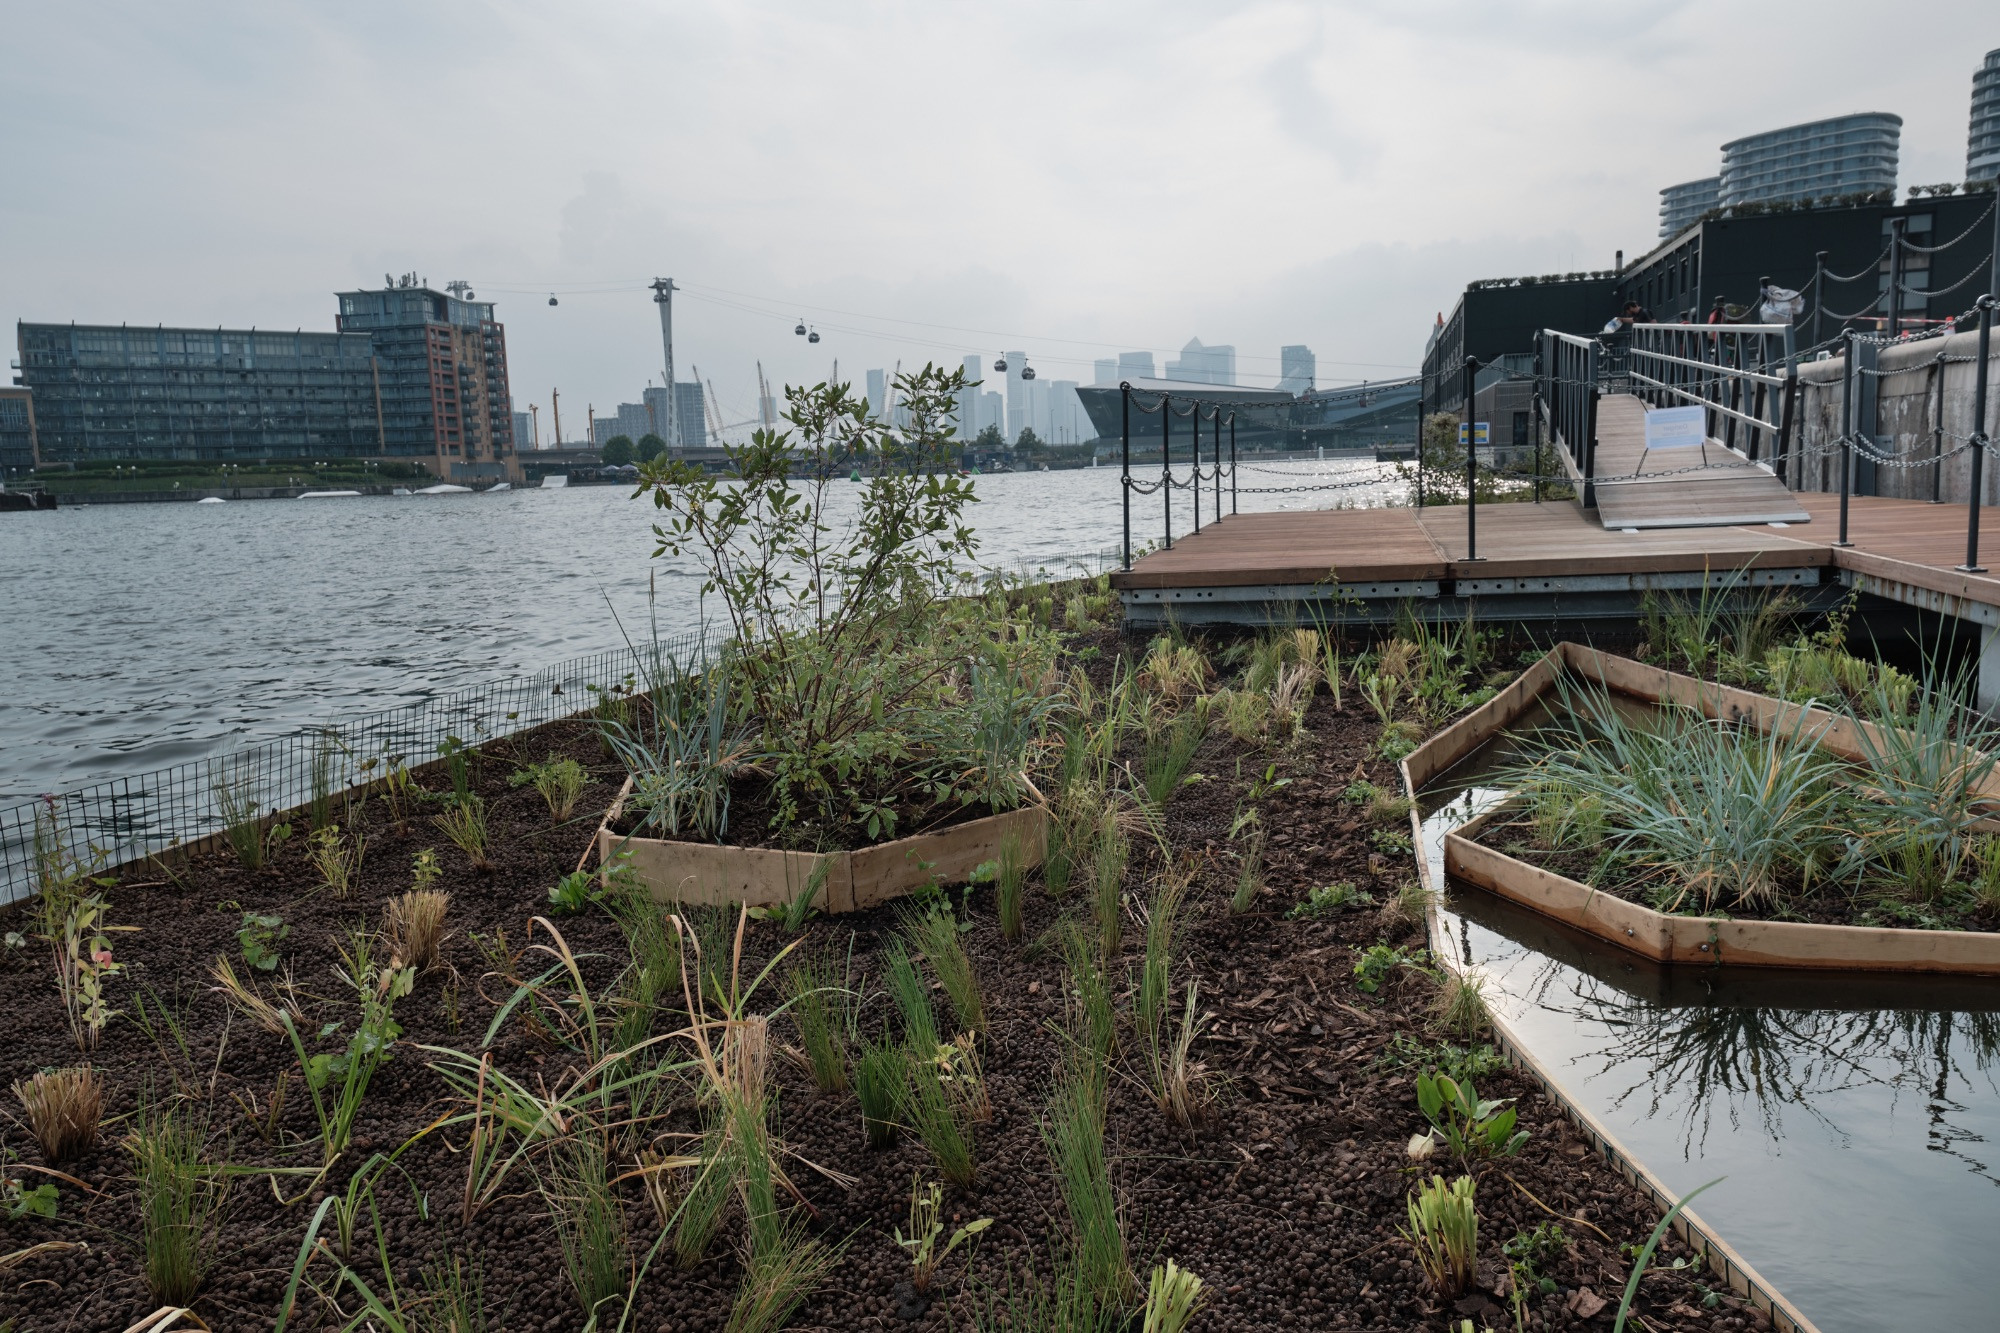 Royal Docks floating garden completed, with planting, decking and a pond